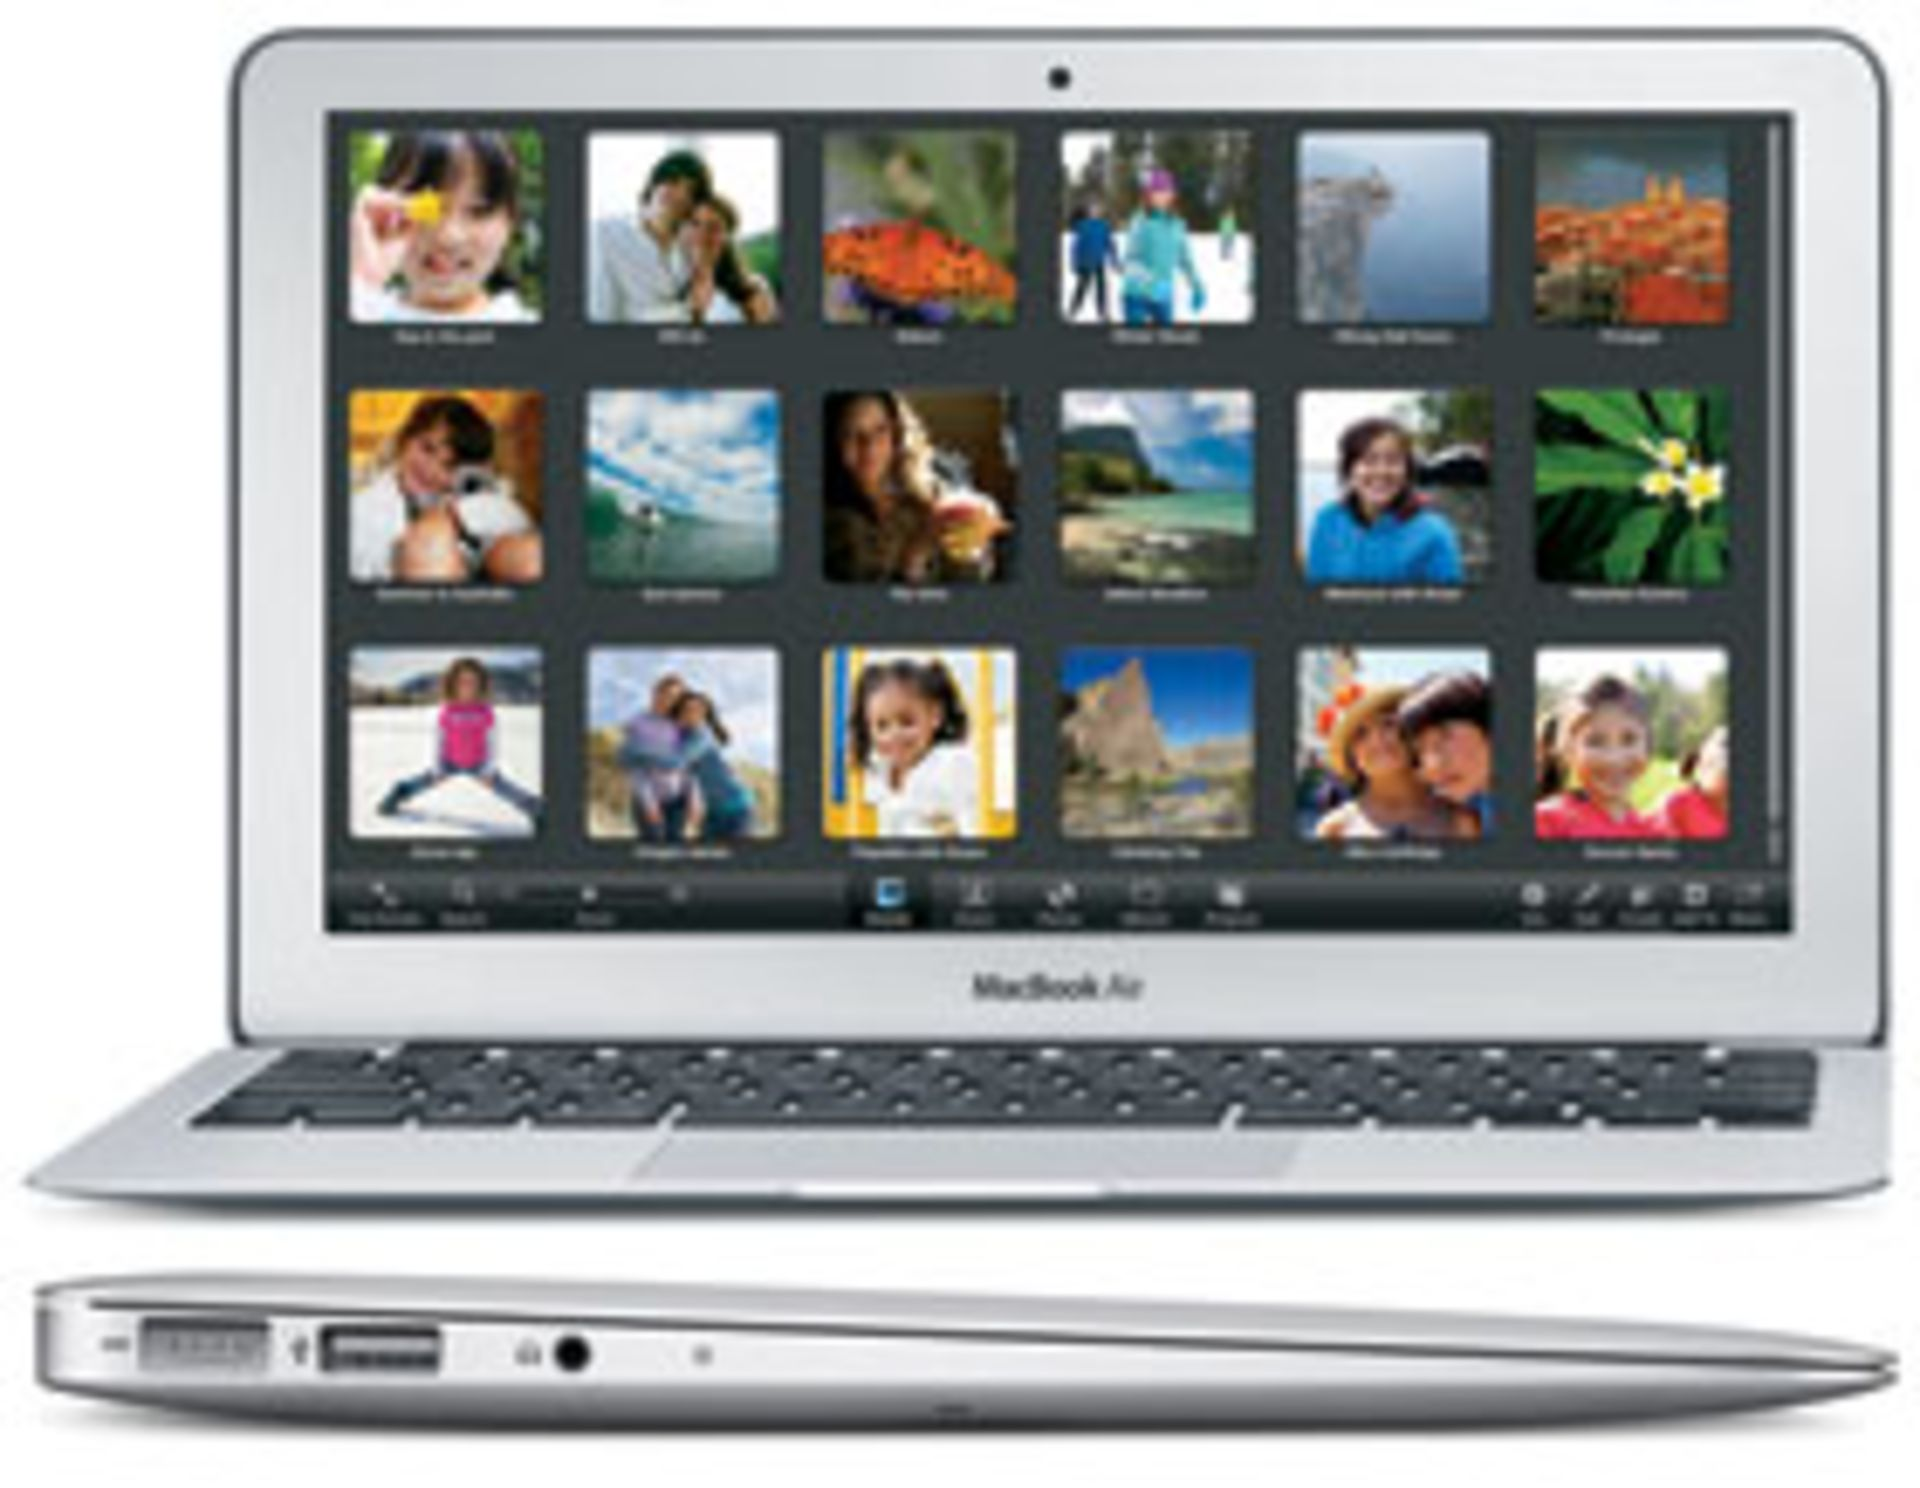 Lot 60010 - V Grade B Macbook Air 11.6 Inch Core 2 Duo - 64GB SSD - A1370 - Available Approx 7 Working Days